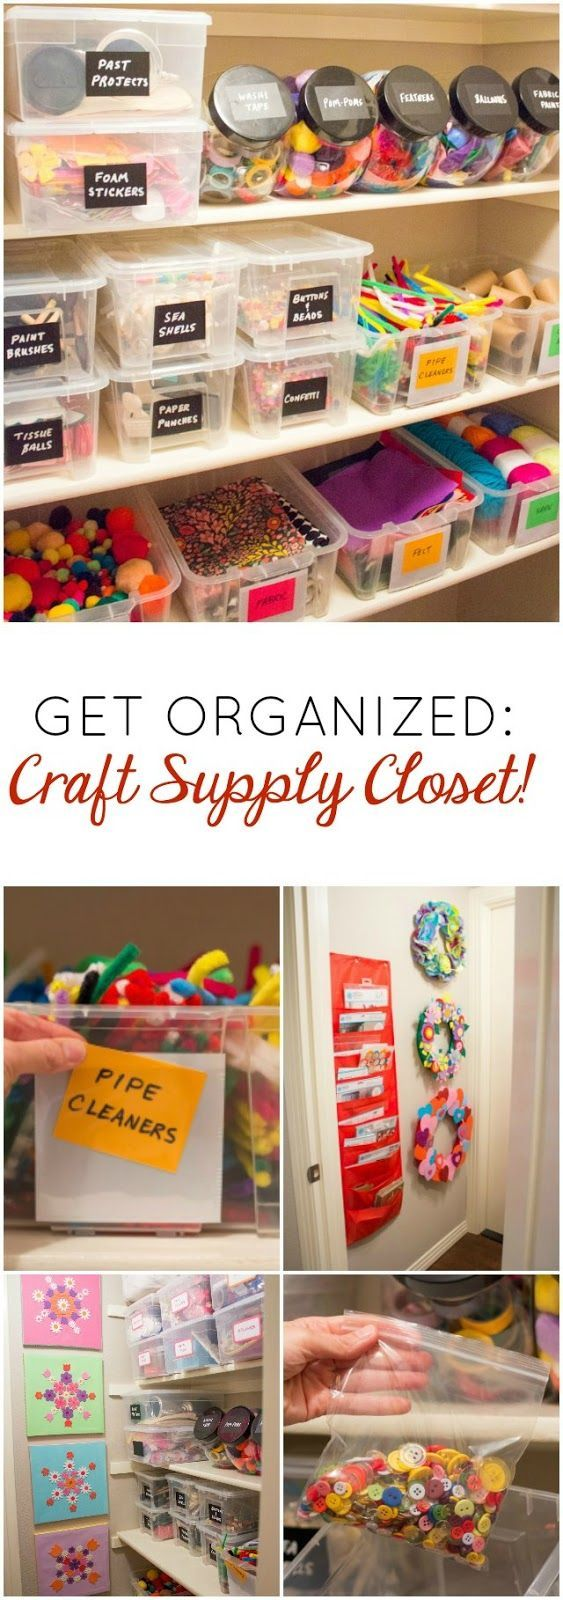 The Craft Supplies Closet Of My Dreams! Organize Craft ClosetToy ...